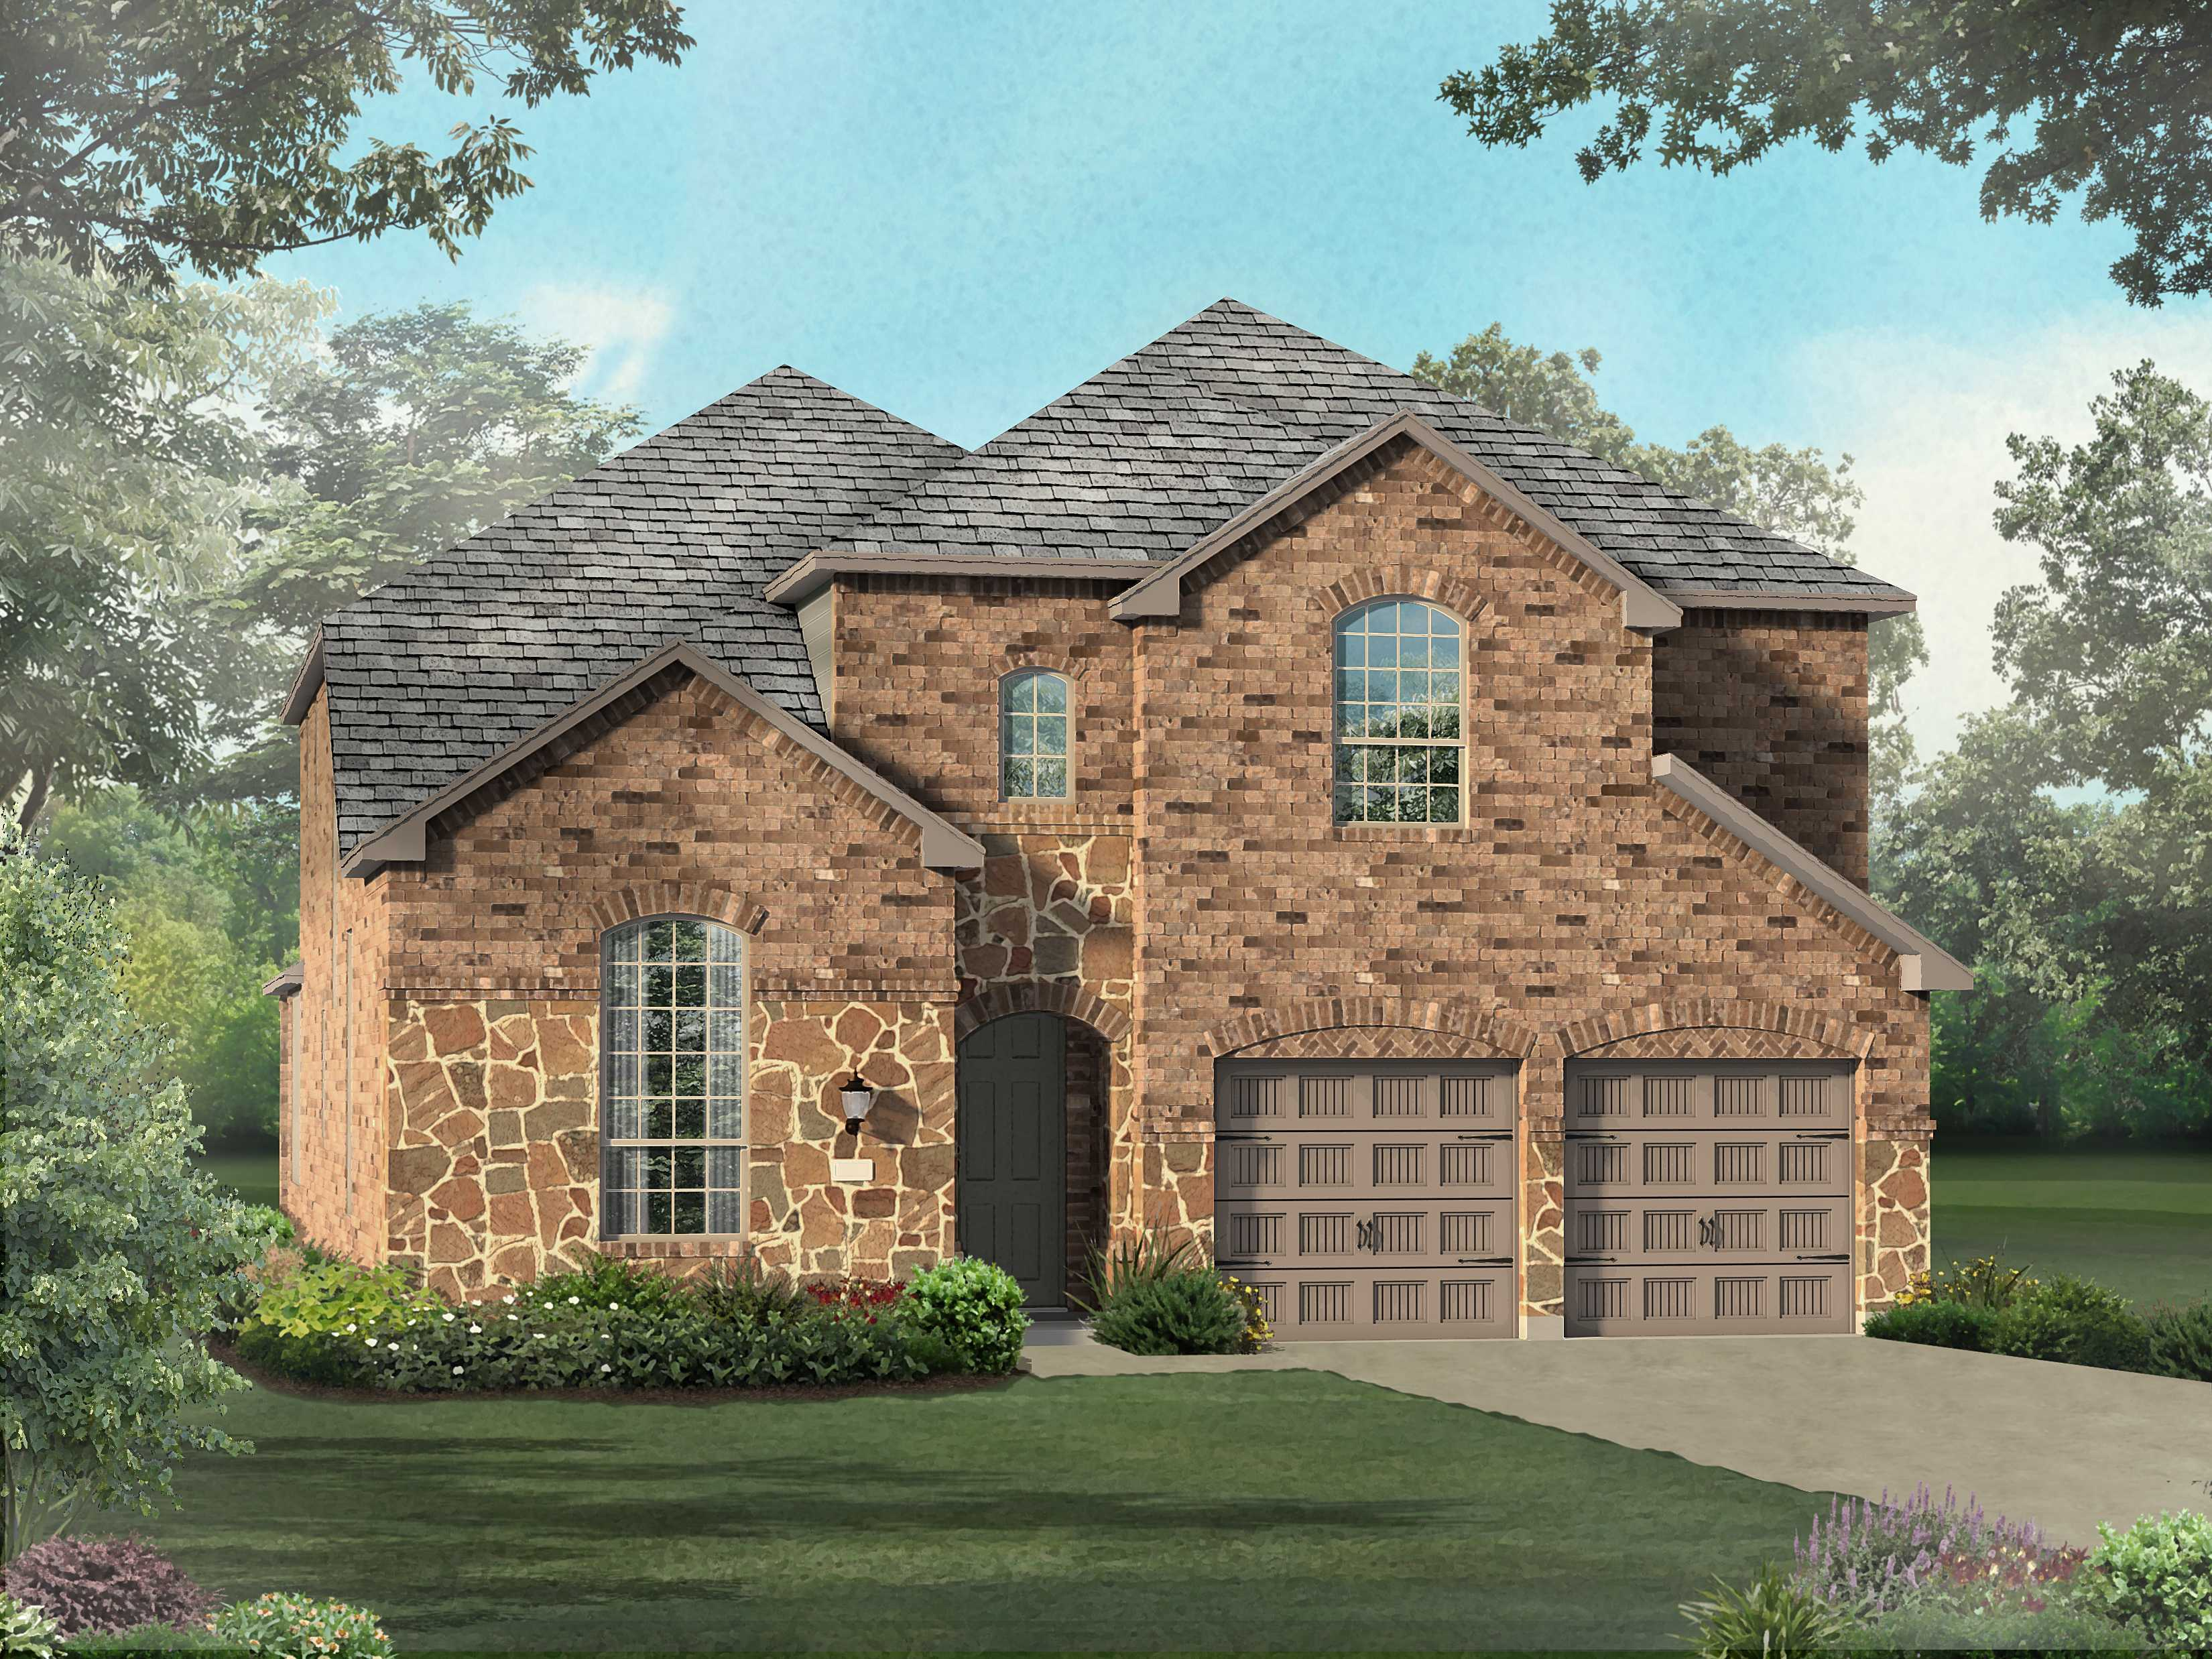 22 Highland Homes Communities in Katy, TX | NewHomeSource